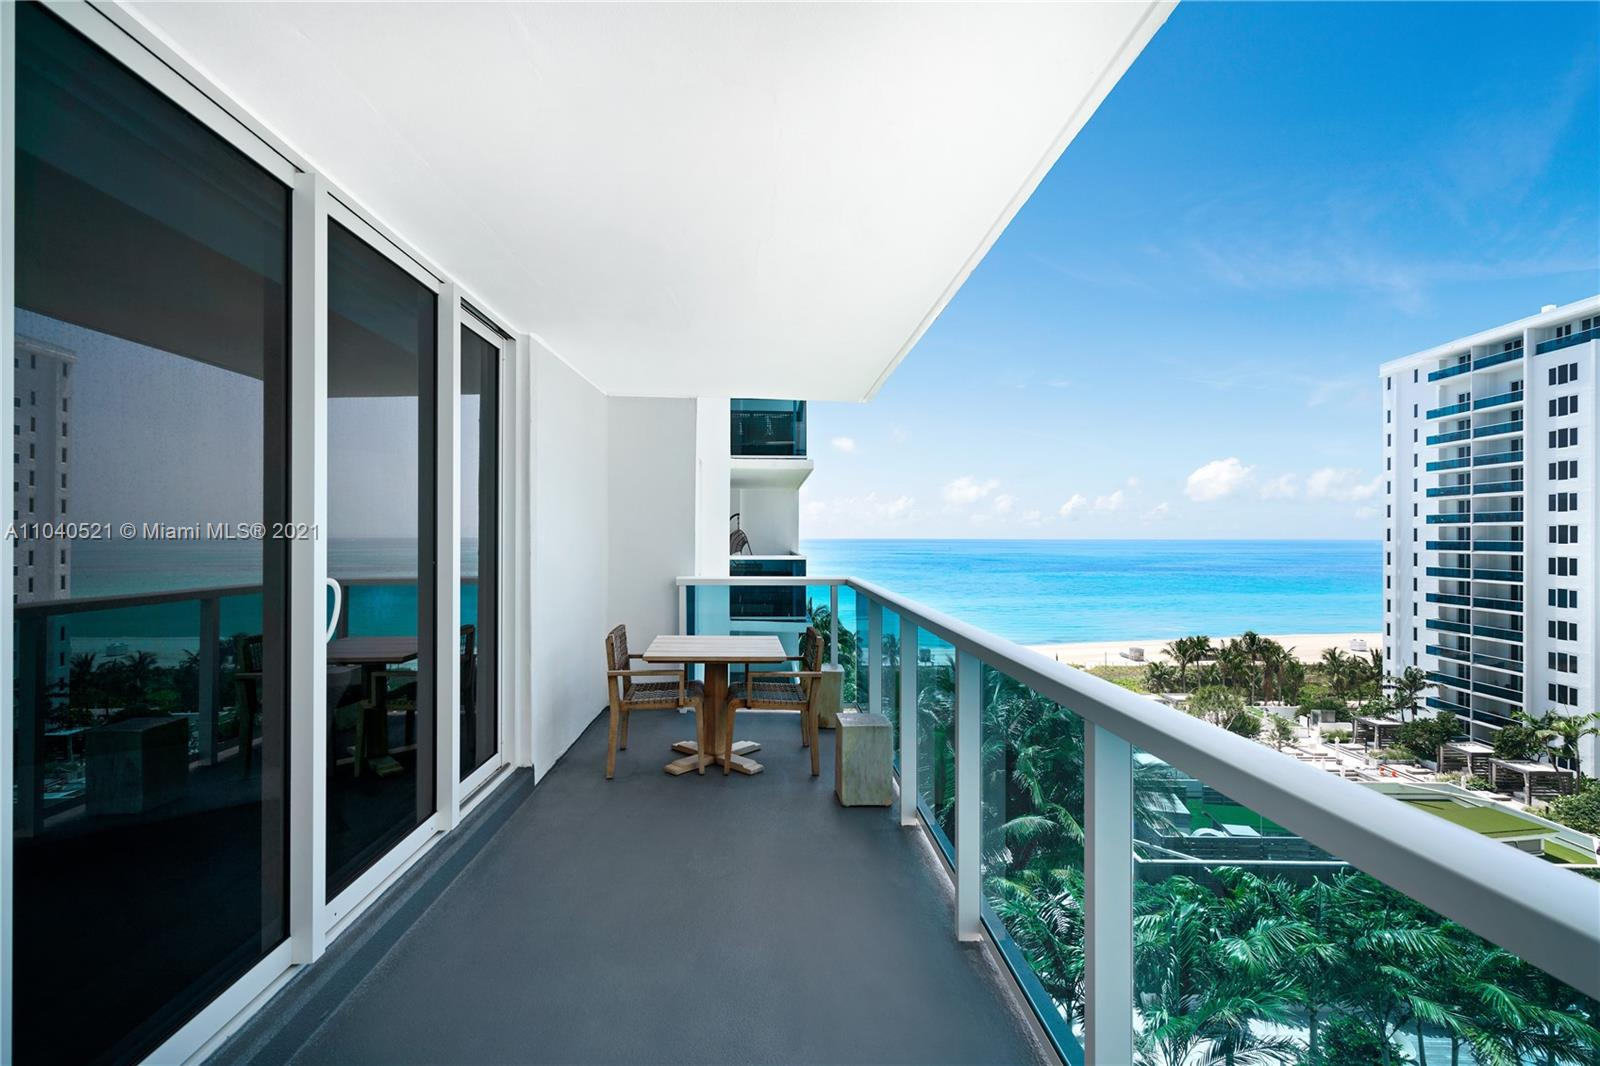 Experience 5-star resort living at 1 Hotel in Miami Beach! This beautiful 3br/3bth, plus a den/office unit has a large living room w/open kitchen & dining area, a long terrace facing south, offering ocean & pool area views. Furnished with modern high-end furniture, all rooms equipped w/smart TV's, large closets, & luxe limestone baths. 1 Hotel is located on the sandy beaches of Millionaire's row – Collins Avenue, offering prime location & white glove service. Amenities include: 4 pools, 4 restaurants, 3 bars, 14,000 SF gym, spa & hair salon, Soul Cycle, chauffeured Tesla, private residence lobby, valet, concierge, & more. Rental includes linens & towels, toiletries, dishes, pots & pans, daily coffee & tea, full use of all the hotel amenities. Long term rental only.